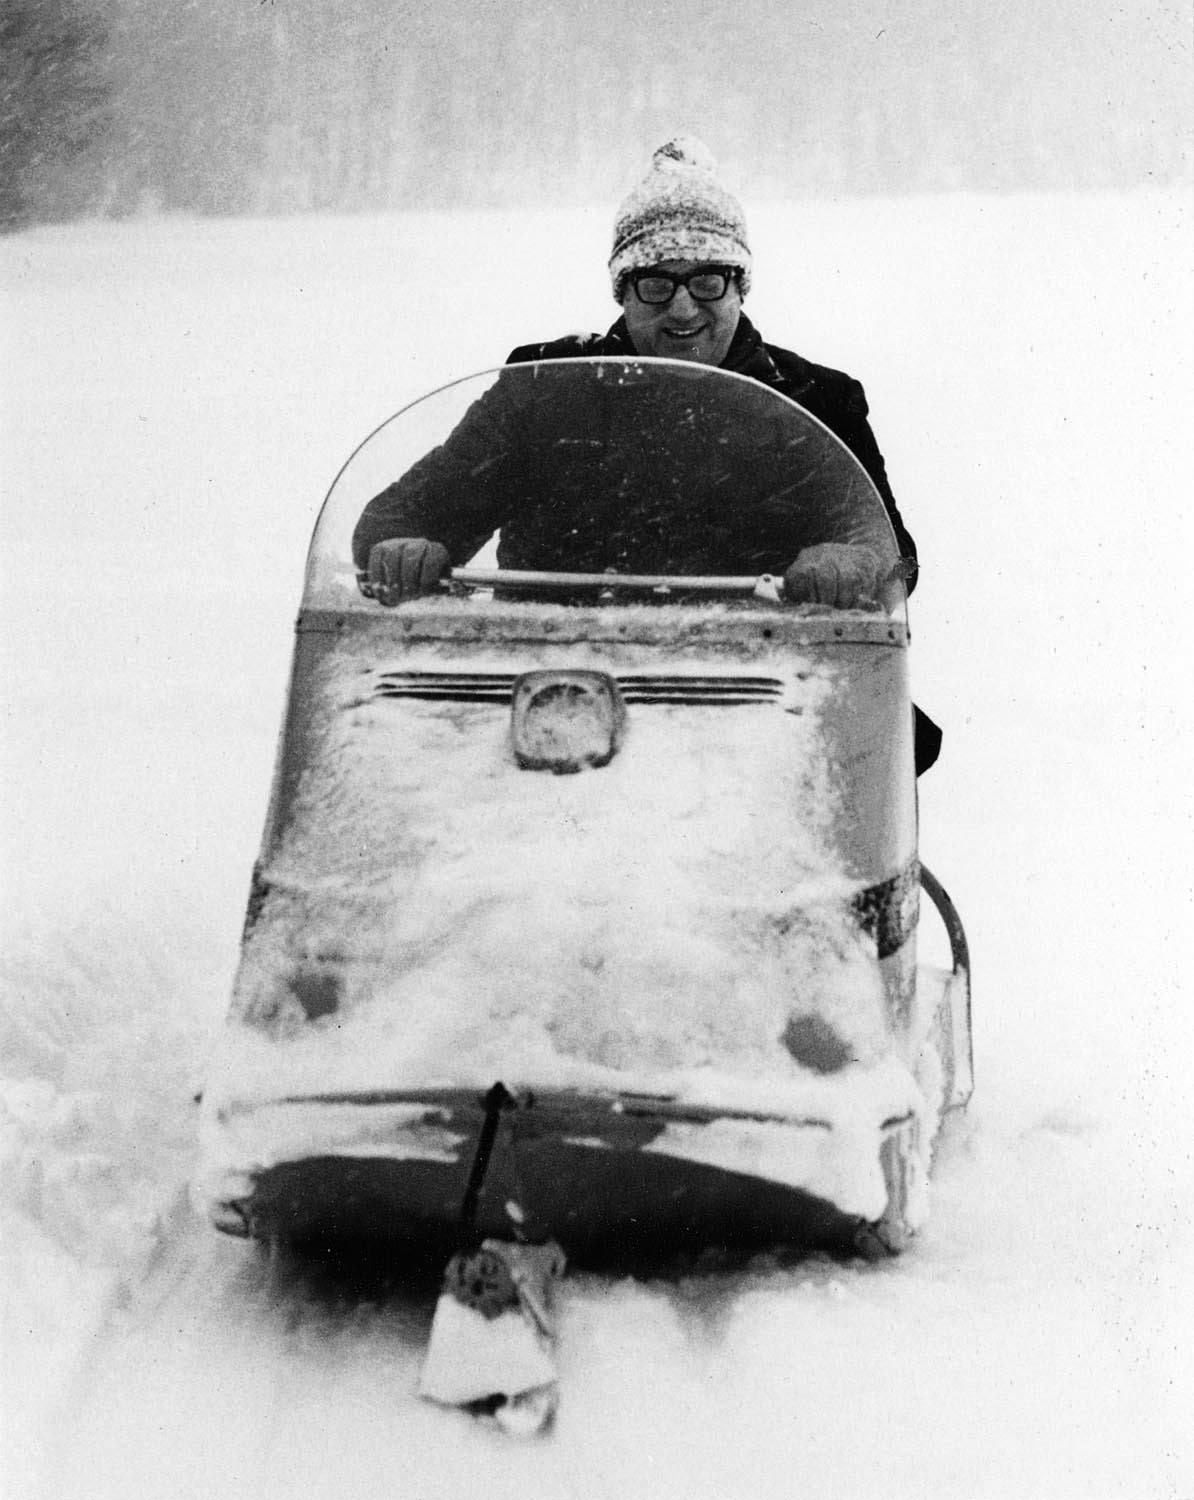 Department of Natural Resources Secretary Lester P. Voigt running a snowmobile. Taken in 1969. Wisconsin Department of Natural Resources photo